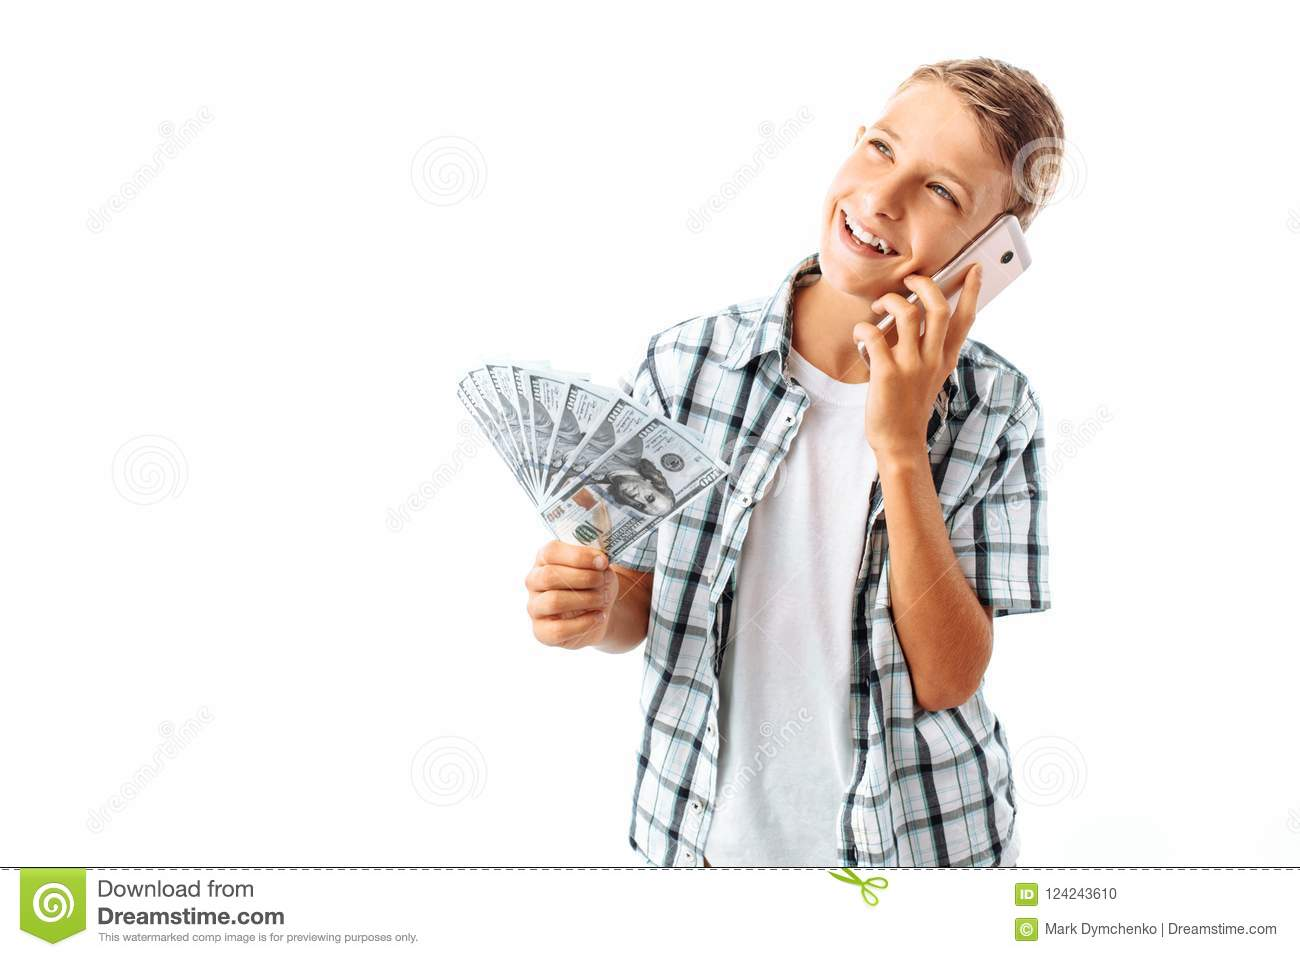 Handsome Teen guy with money in his hands, talking on the phone, joyful man holding dollars, in Studio on white background